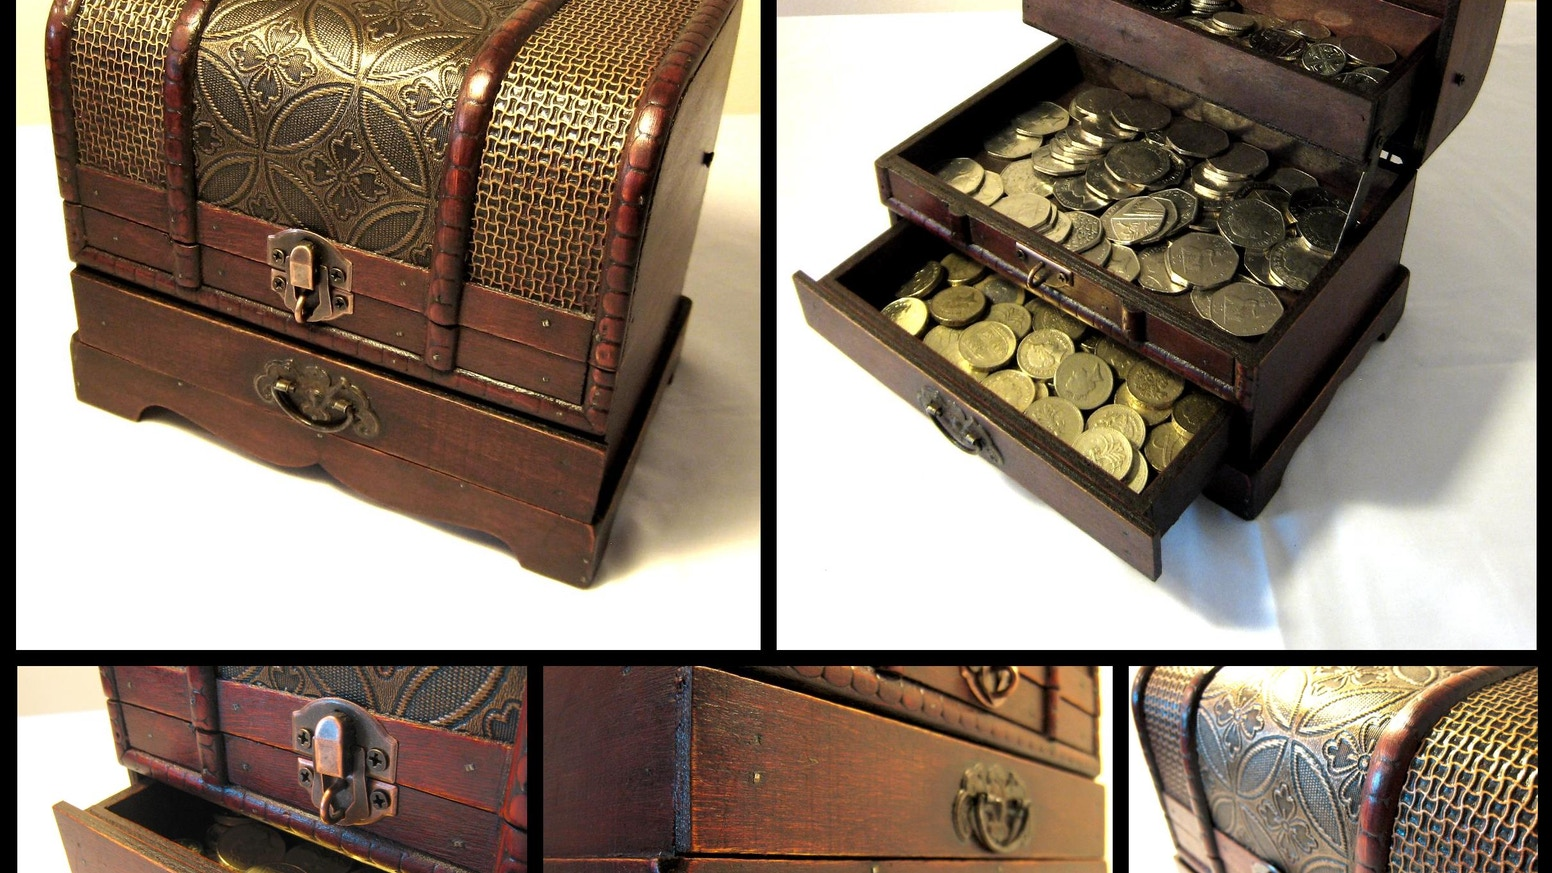 THE TREASURE CHEST for storing your Fantasy Coins, Bars, Dice, Counters and Tokens!